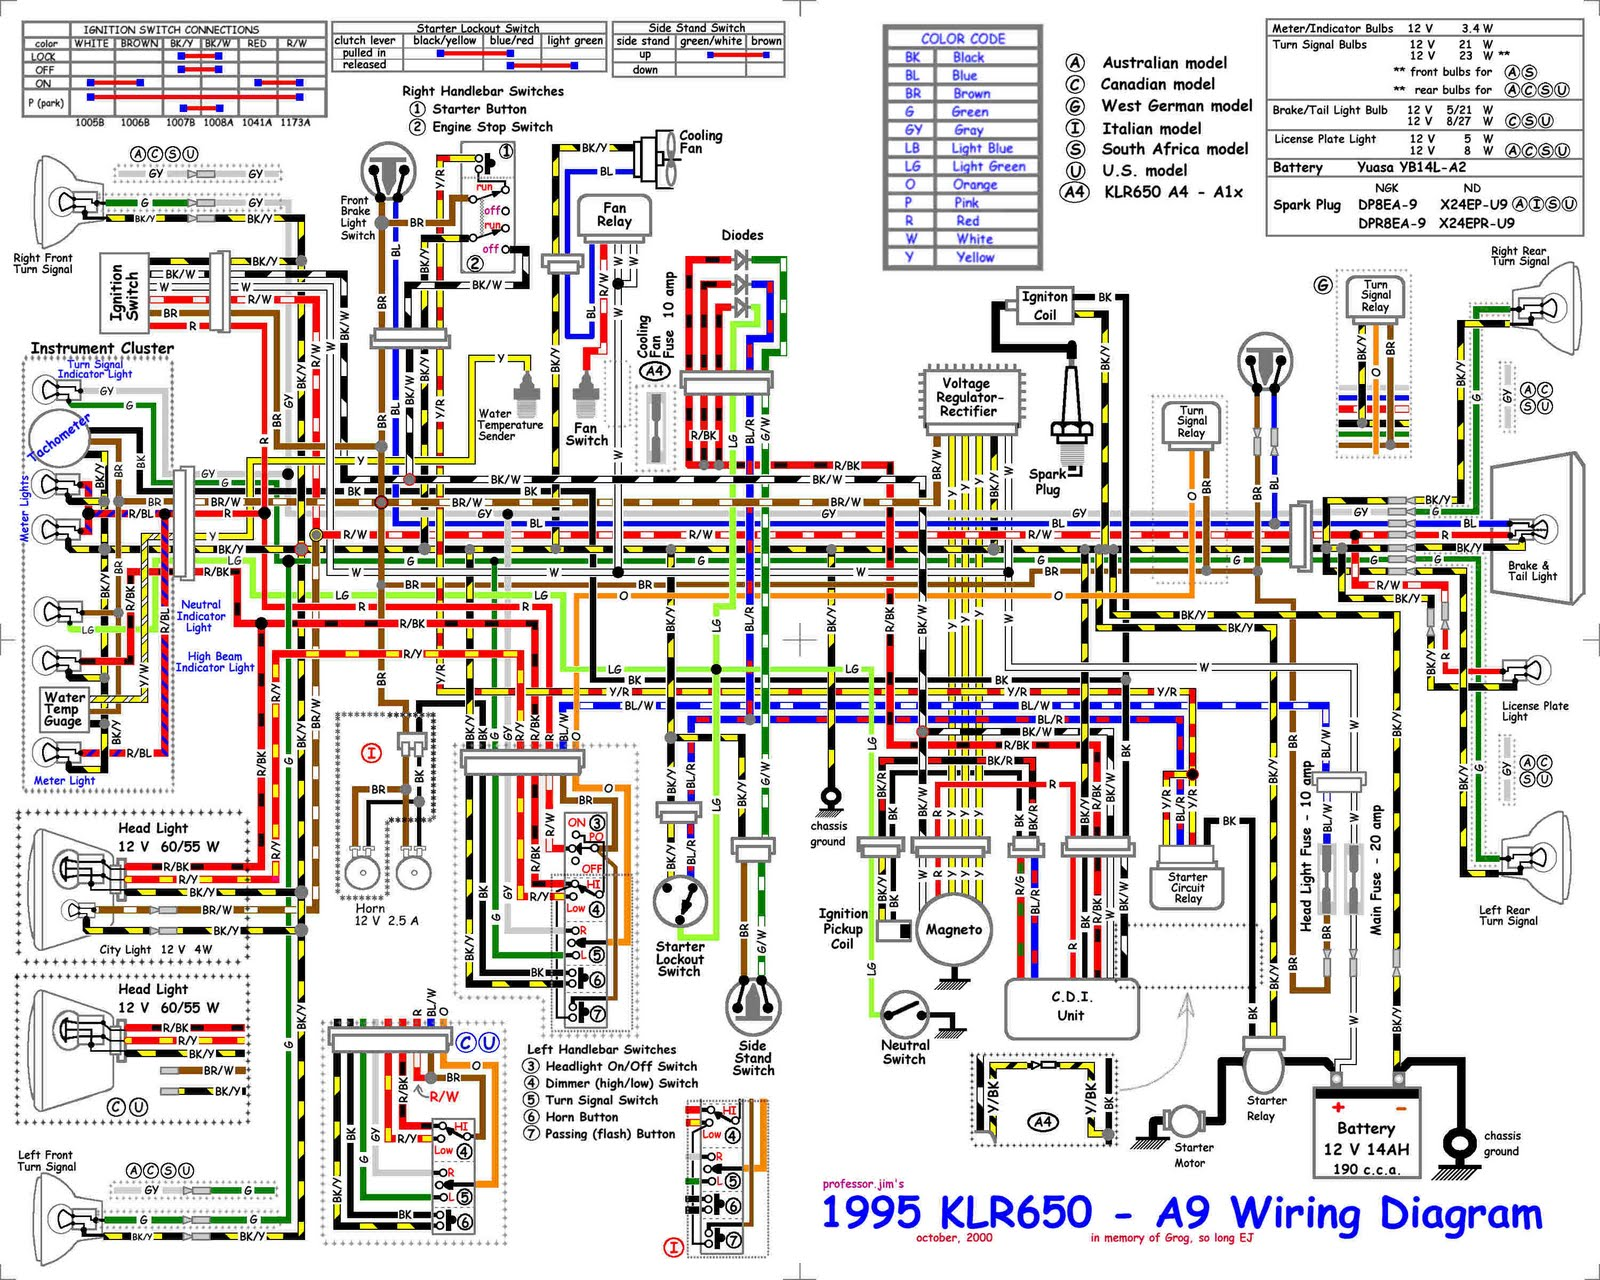 park light wiring diagram 1988 ford ranger with 68ef308d7ad7b2abaa01c3cfb3b77063 on 2011 09 01 archive likewise 52pyq Mercury Grand Marquis Car Won T Start Blue Checked additionally parison furthermore Cranks Ok But No Start Checklist For Fuel Injected Mustangs moreover Ford E Series E 250 1995 Fuse Box Diagram.